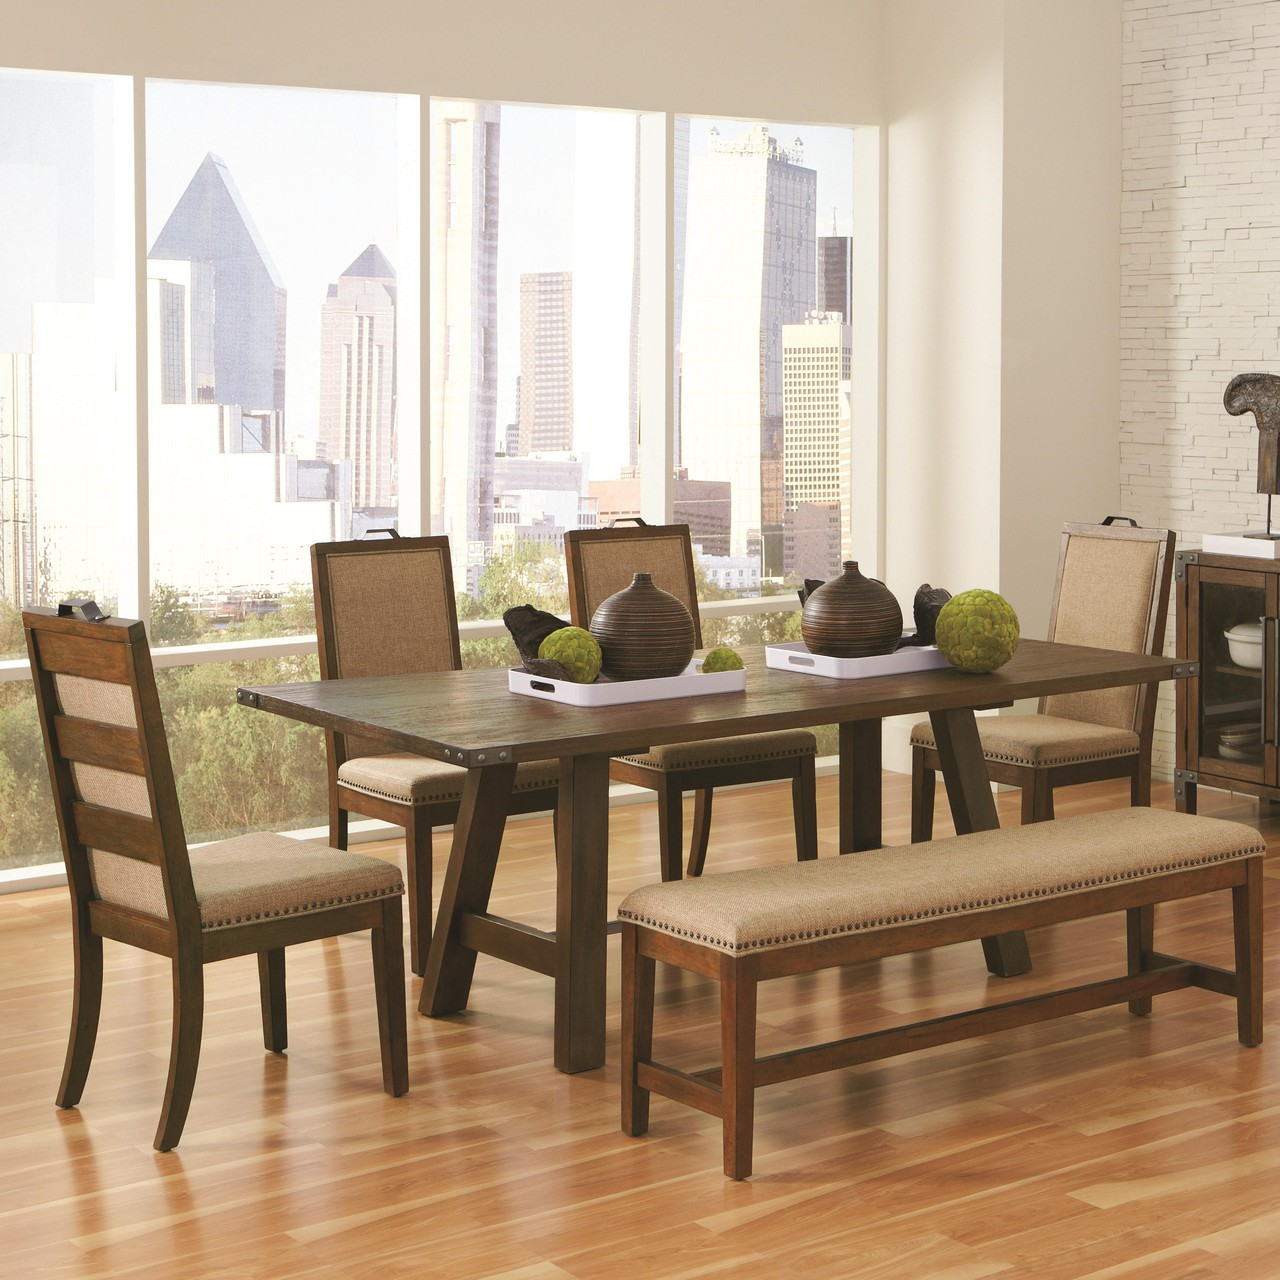 Weathered Acacia Dining Table Set